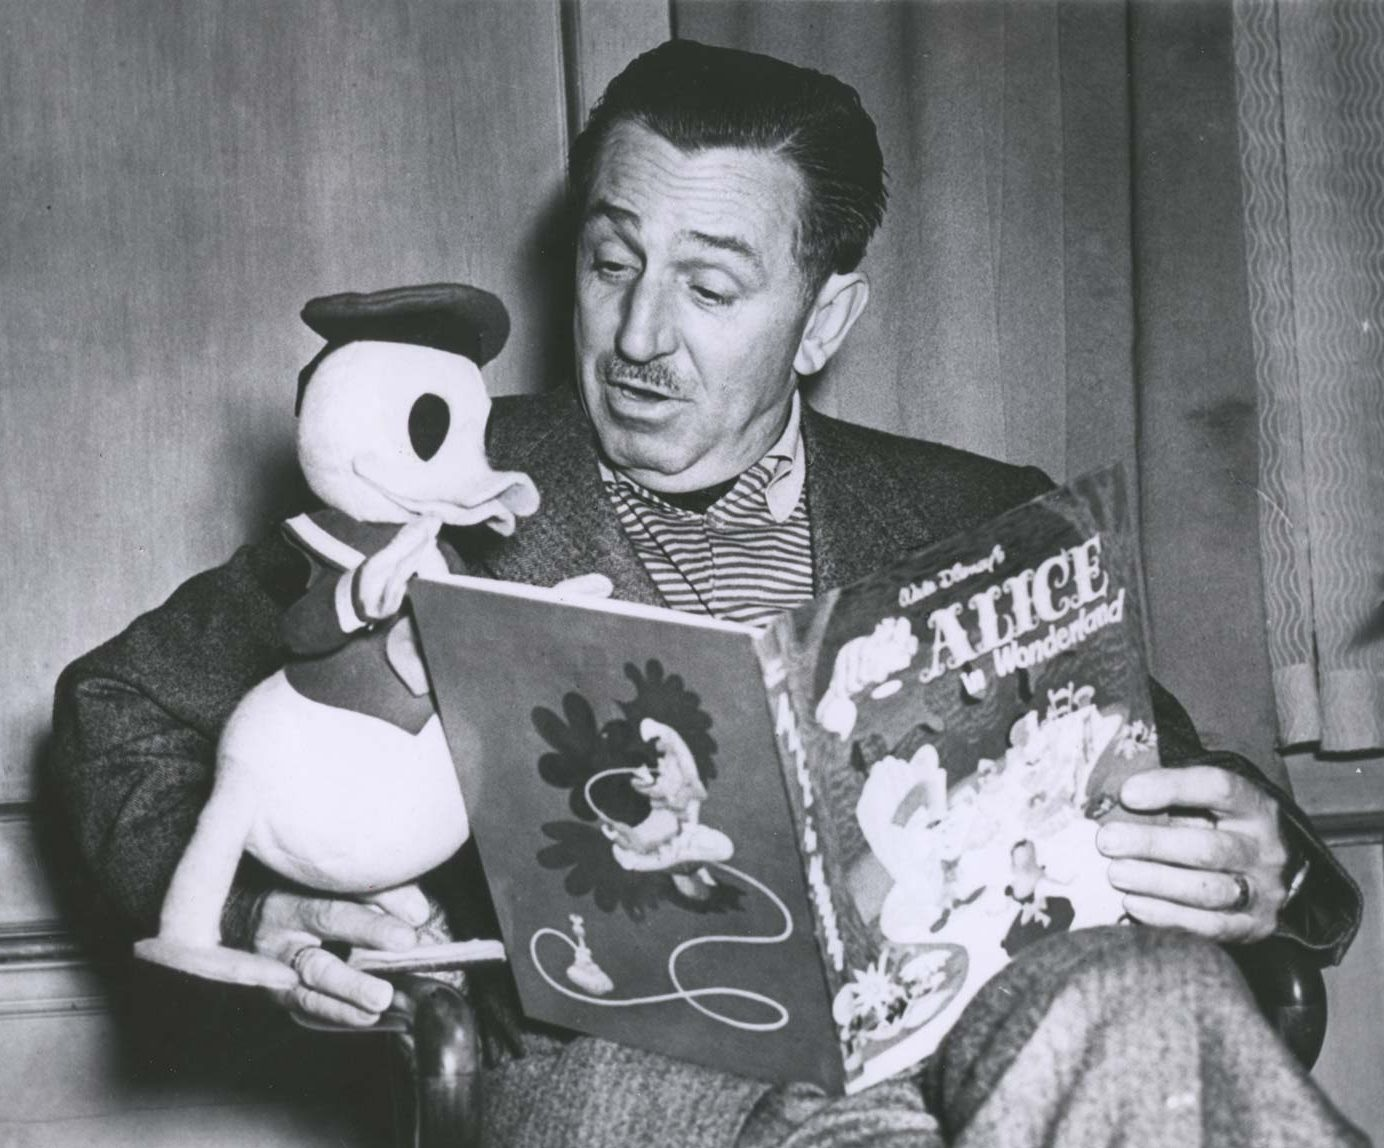 1 62 e1606989575440 20 Magical Facts You Might Not Have Known About Walt Disney